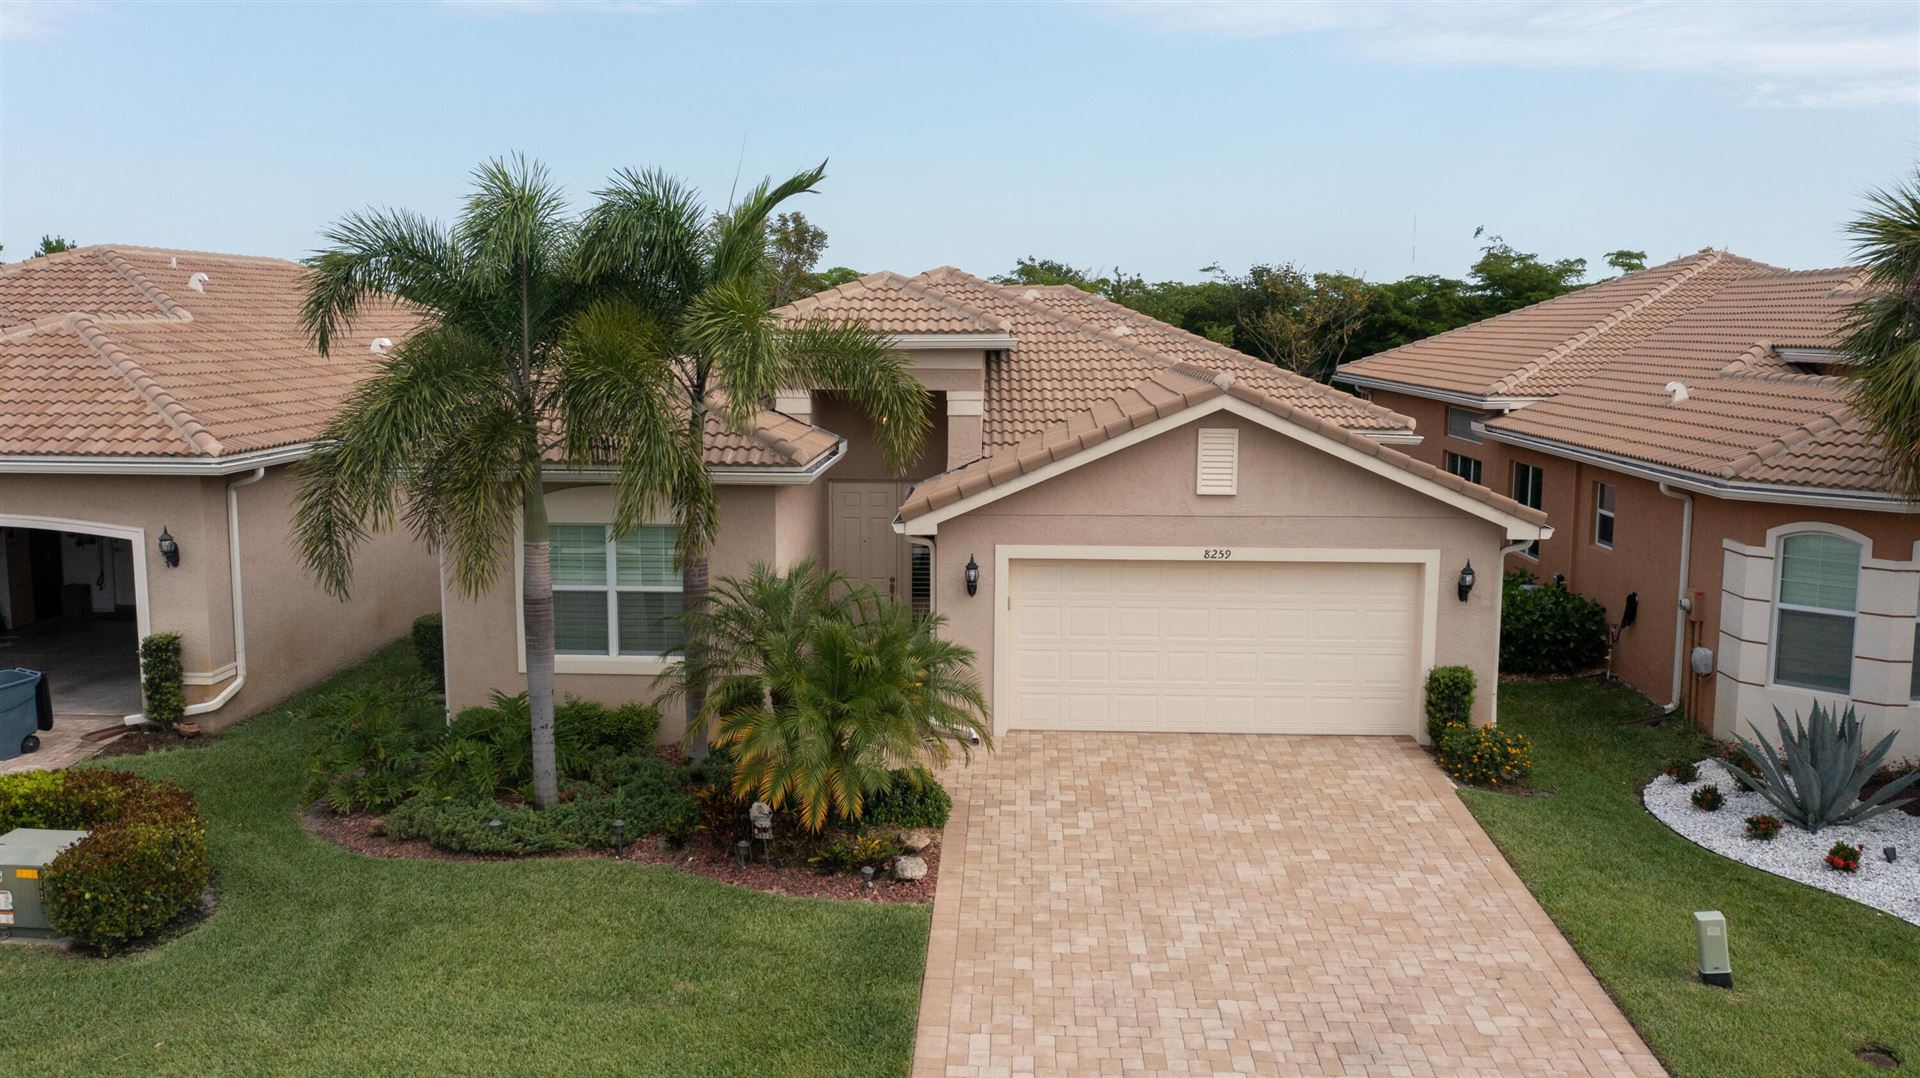 8259 Boulder Mountain Terrace, Boynton Beach, FL 33473 - #: RX-10710174